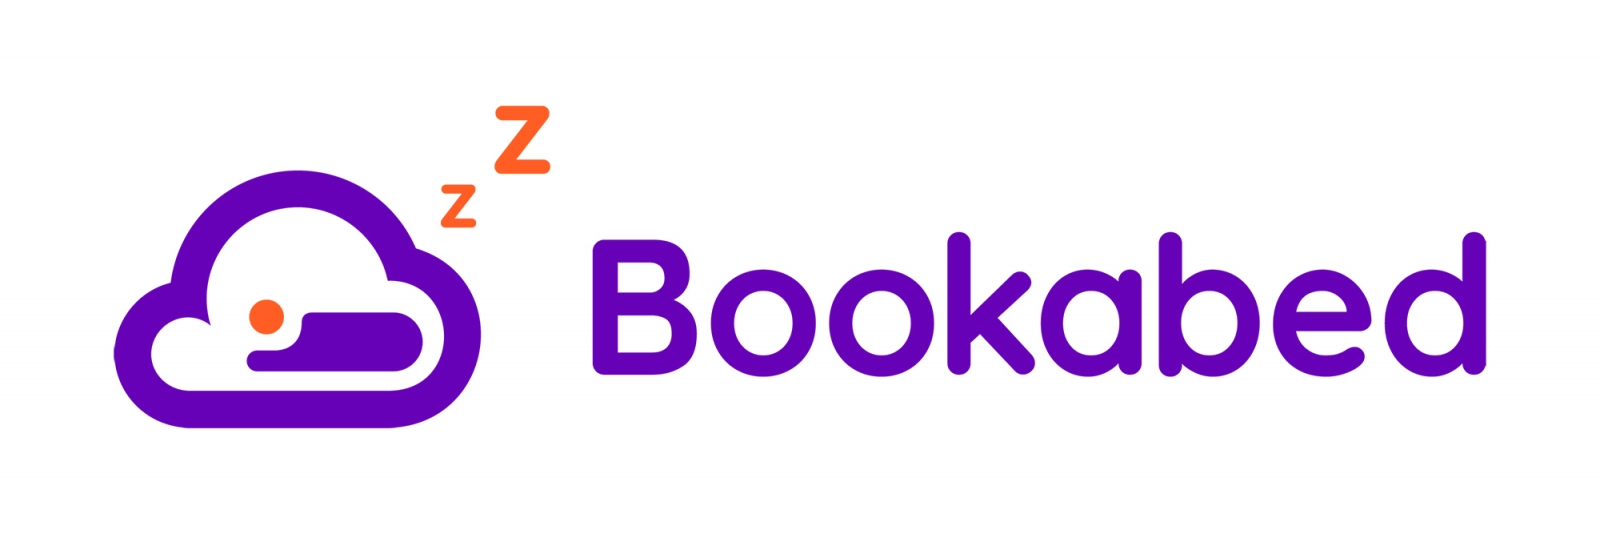 BookaBed launch new branding & promotion for Lee and Bev